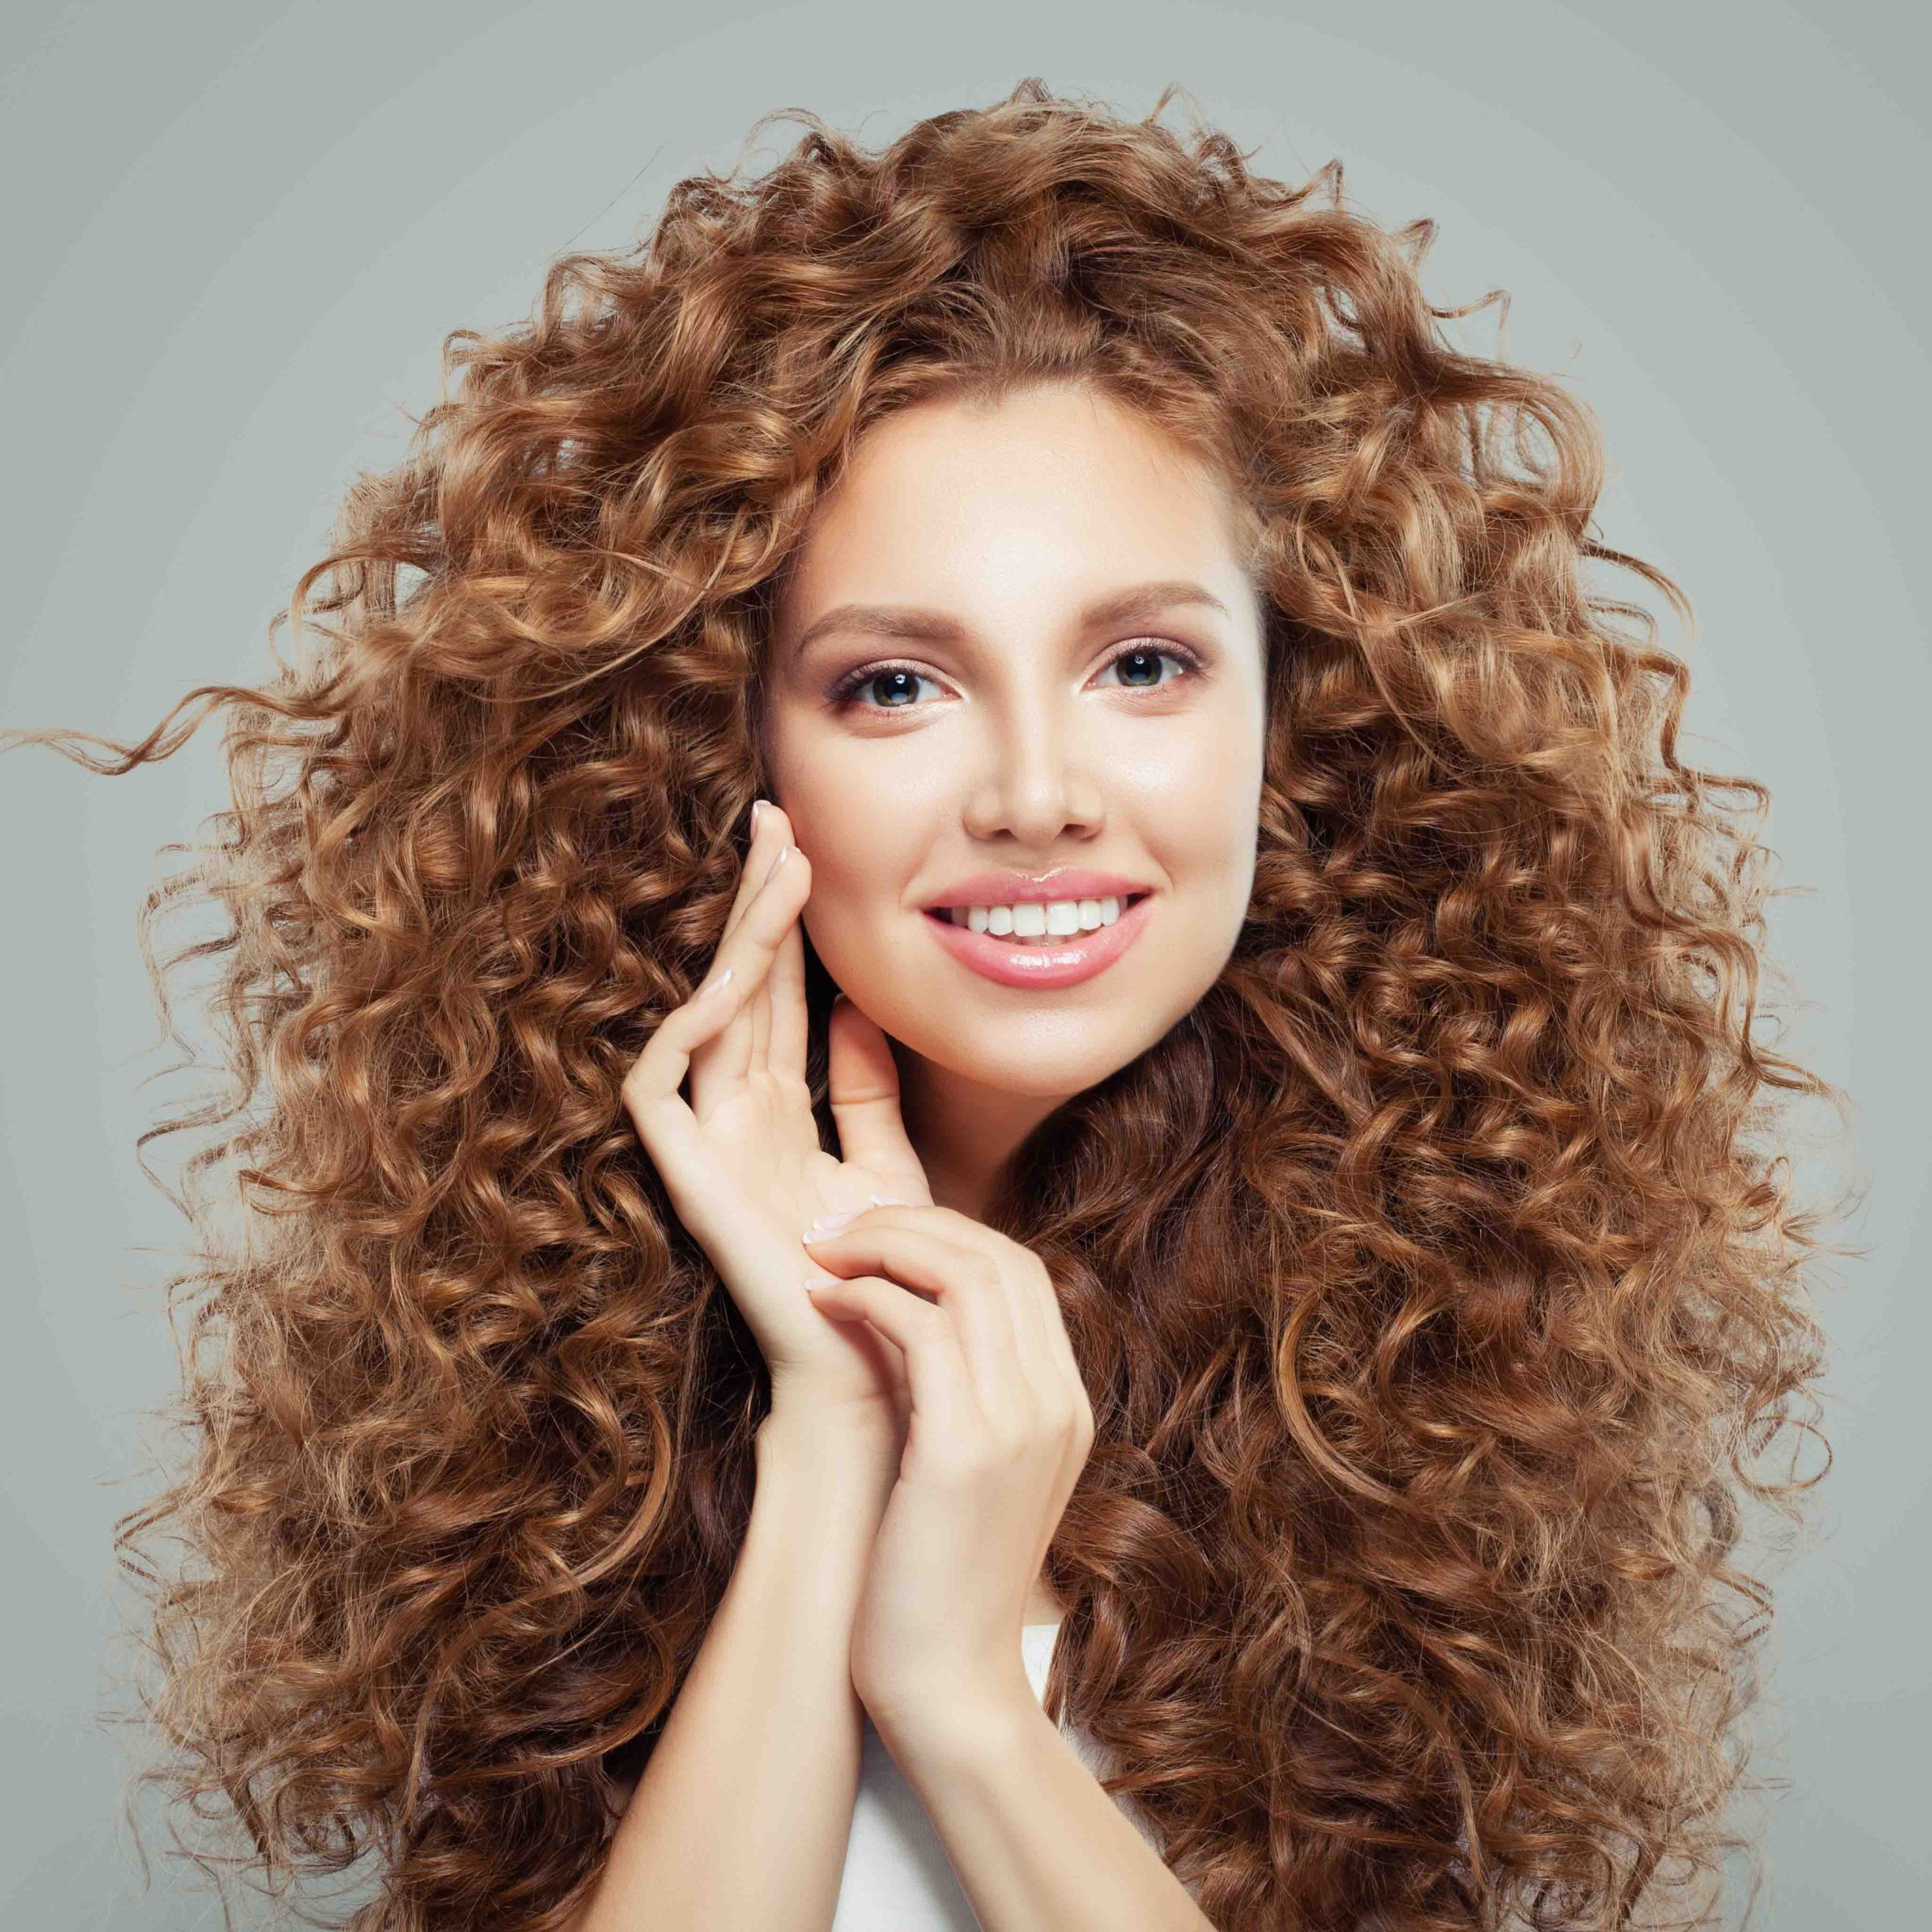 capelli-ricci-royal-bee-keeping-liss-hairlovers-style.jpg